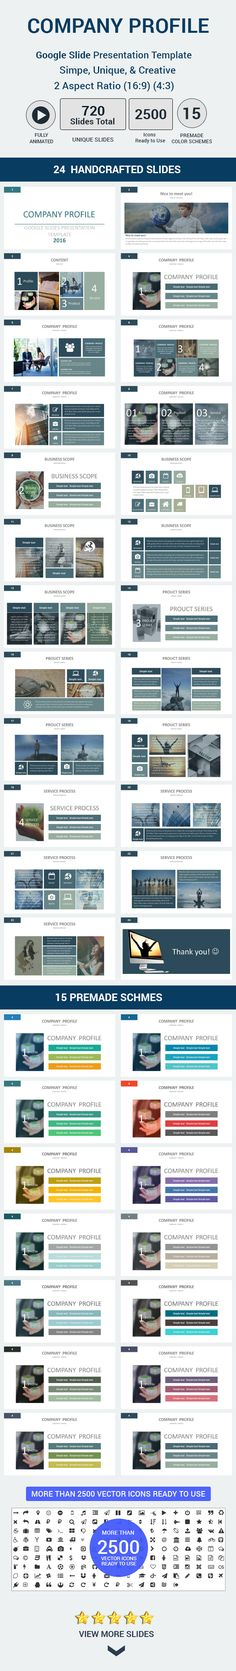 Company profile Google Slides Presentation Template. Download here: http://graphicriver.net/item/company-profile-google-slides-presentation-template/16455906?ref=ksioks